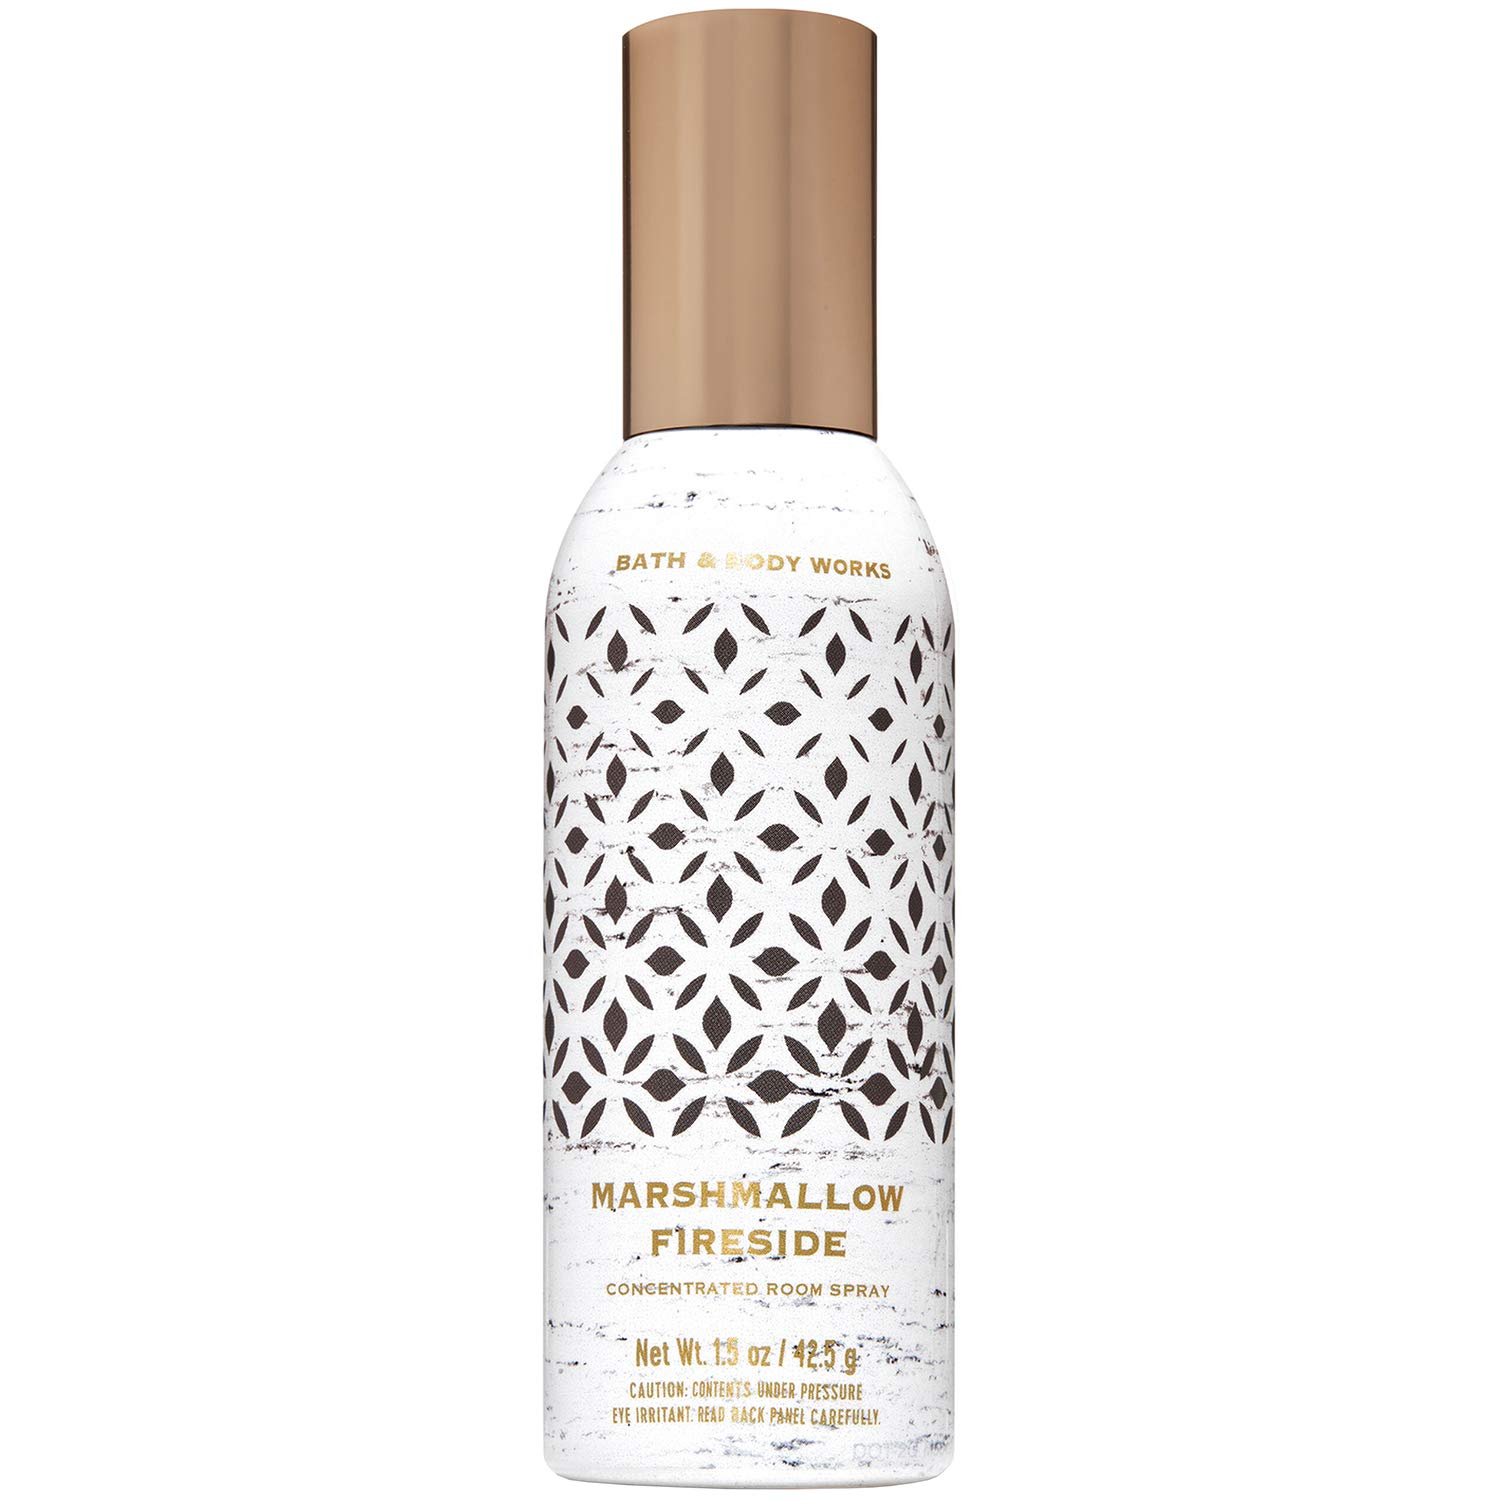 Bath and Body Works Marshmallow Fireside Concentrated Room Spray 1.5 Ounce (2019 Edition)